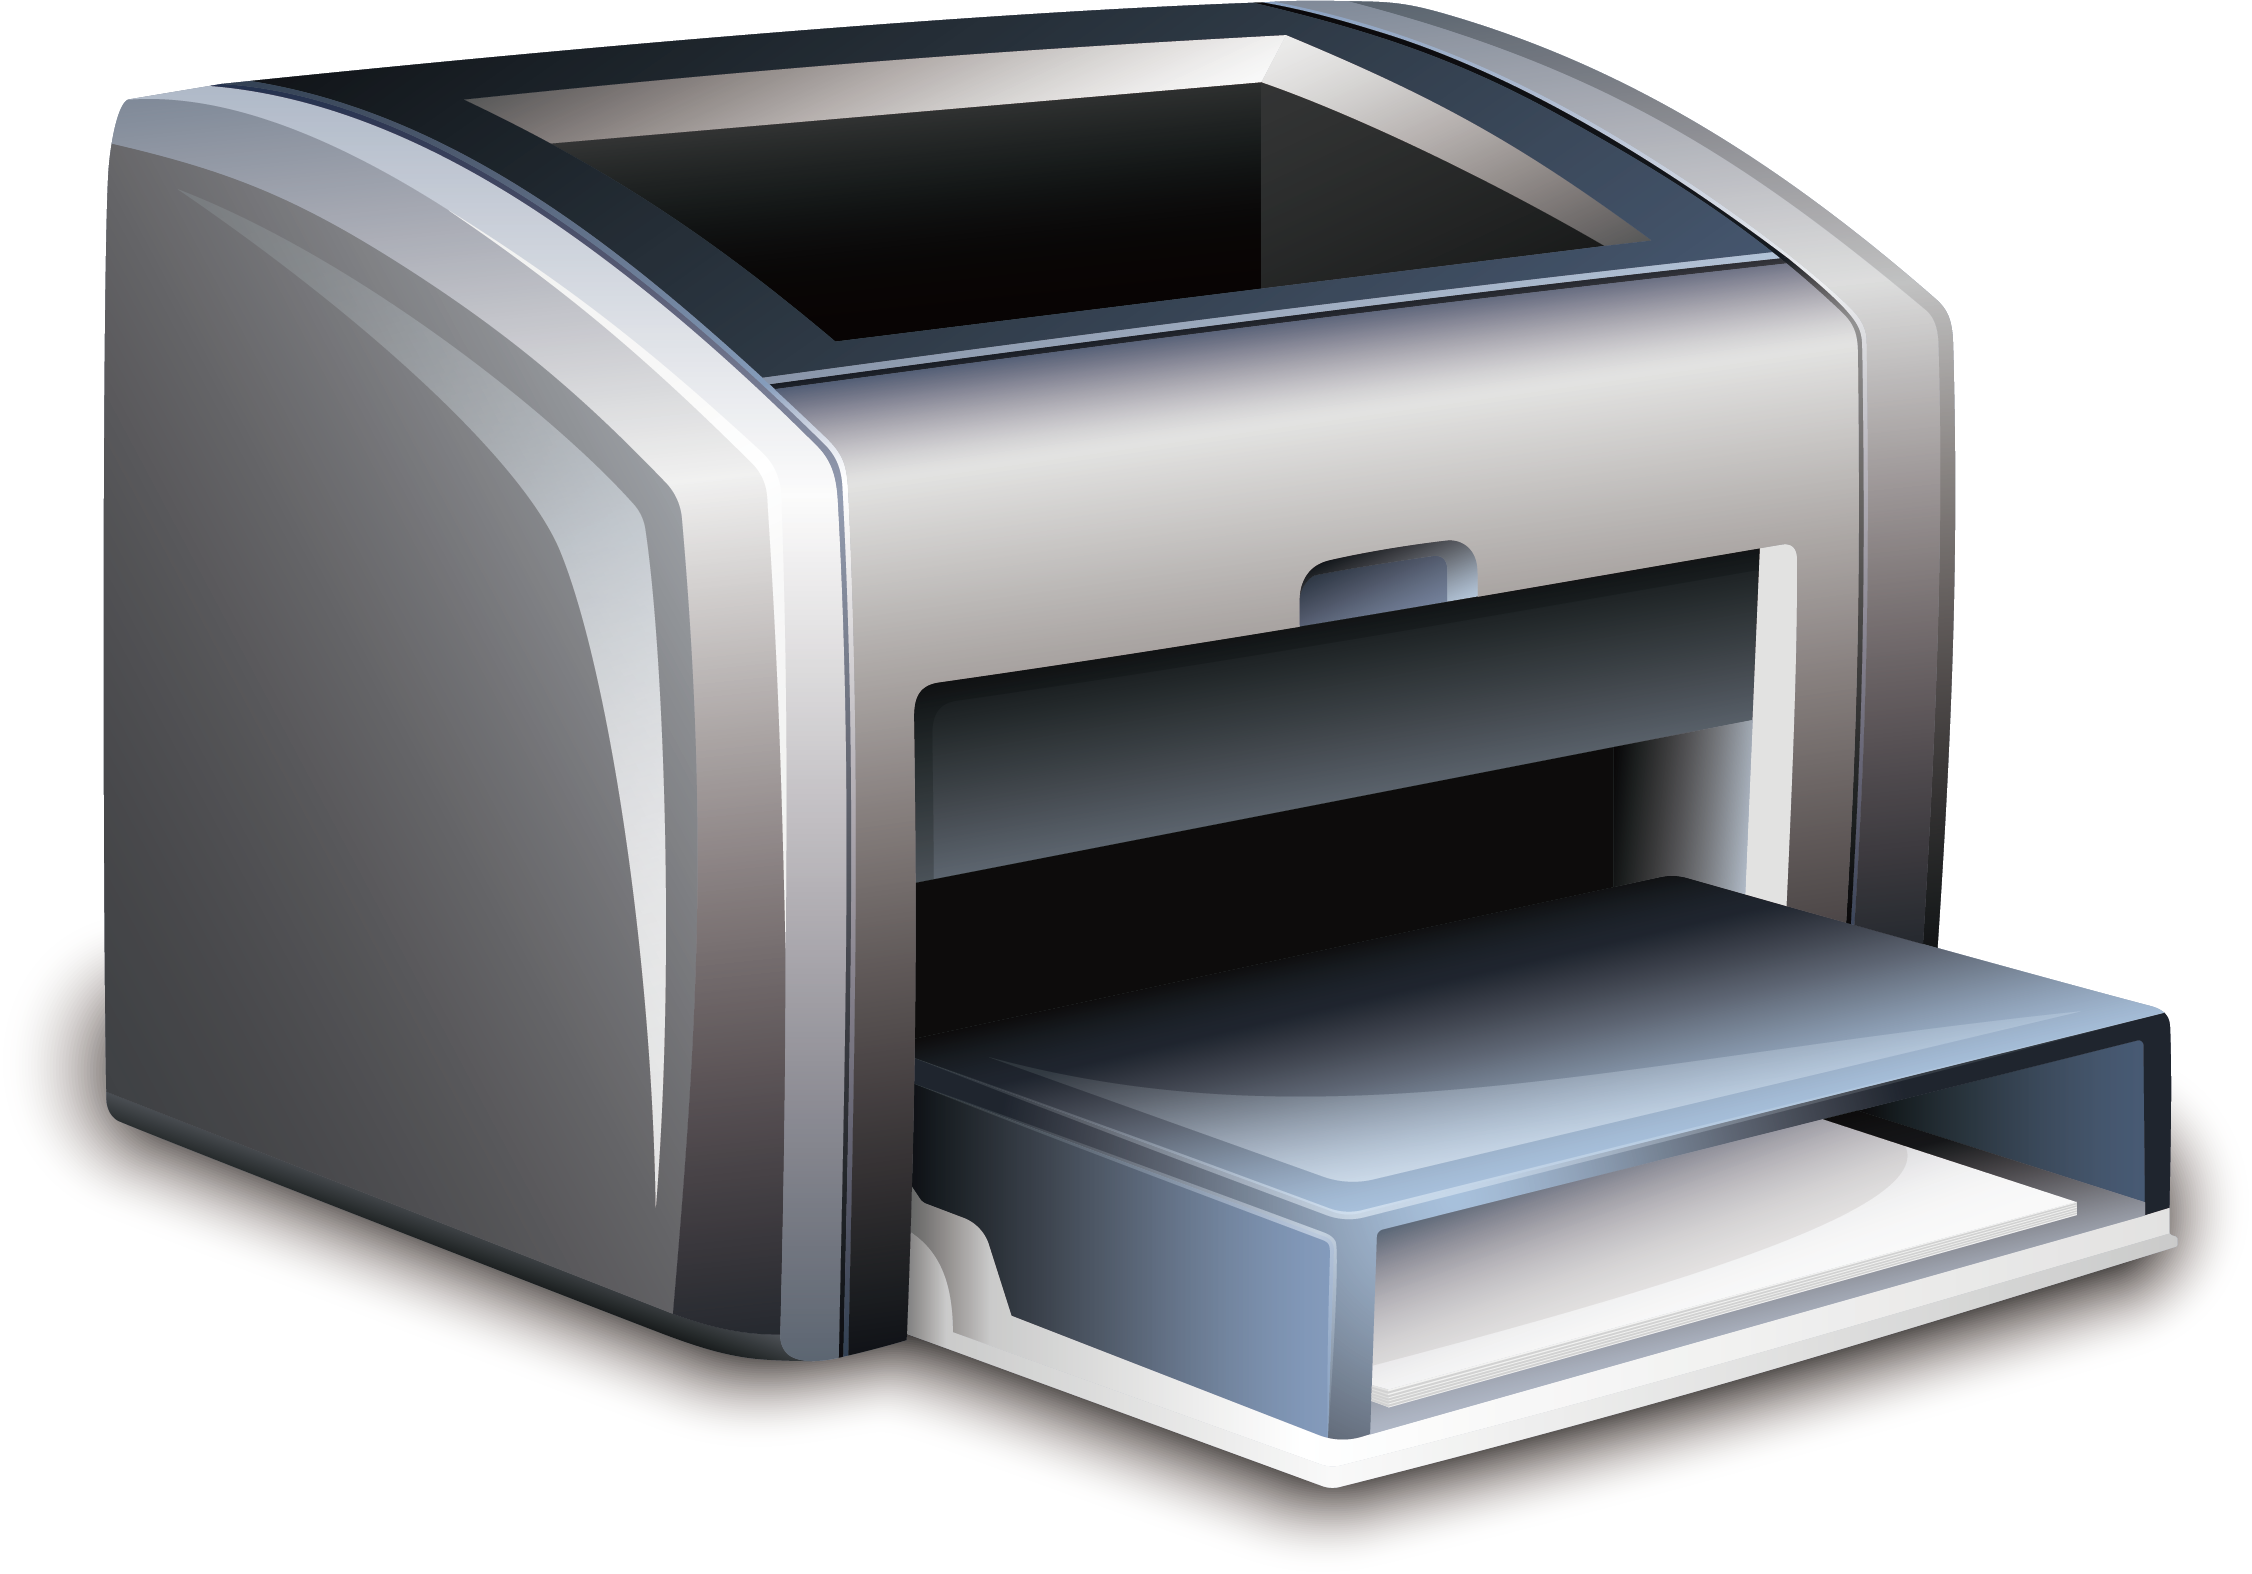 Paper printer laser printing. Electronics clipart office equipments